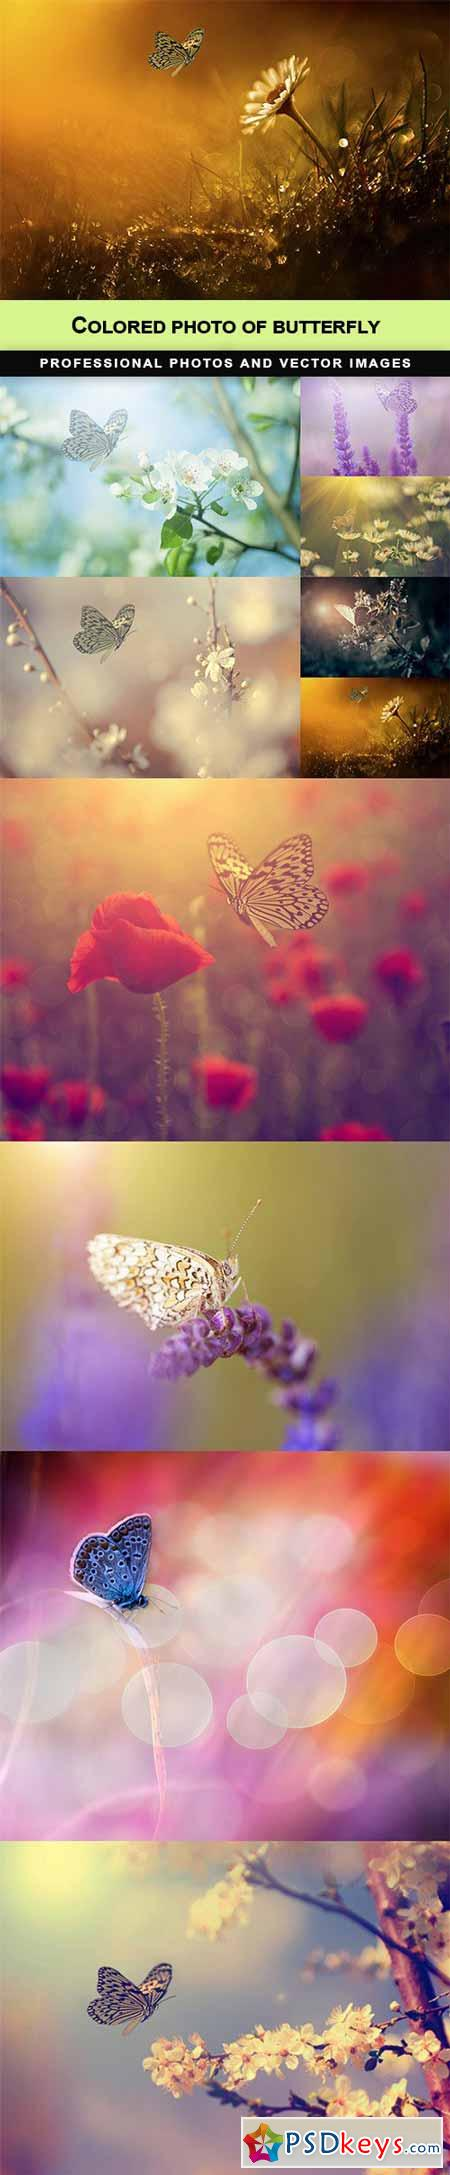 Colored photo of butterfly - 10 UHQ JPEG